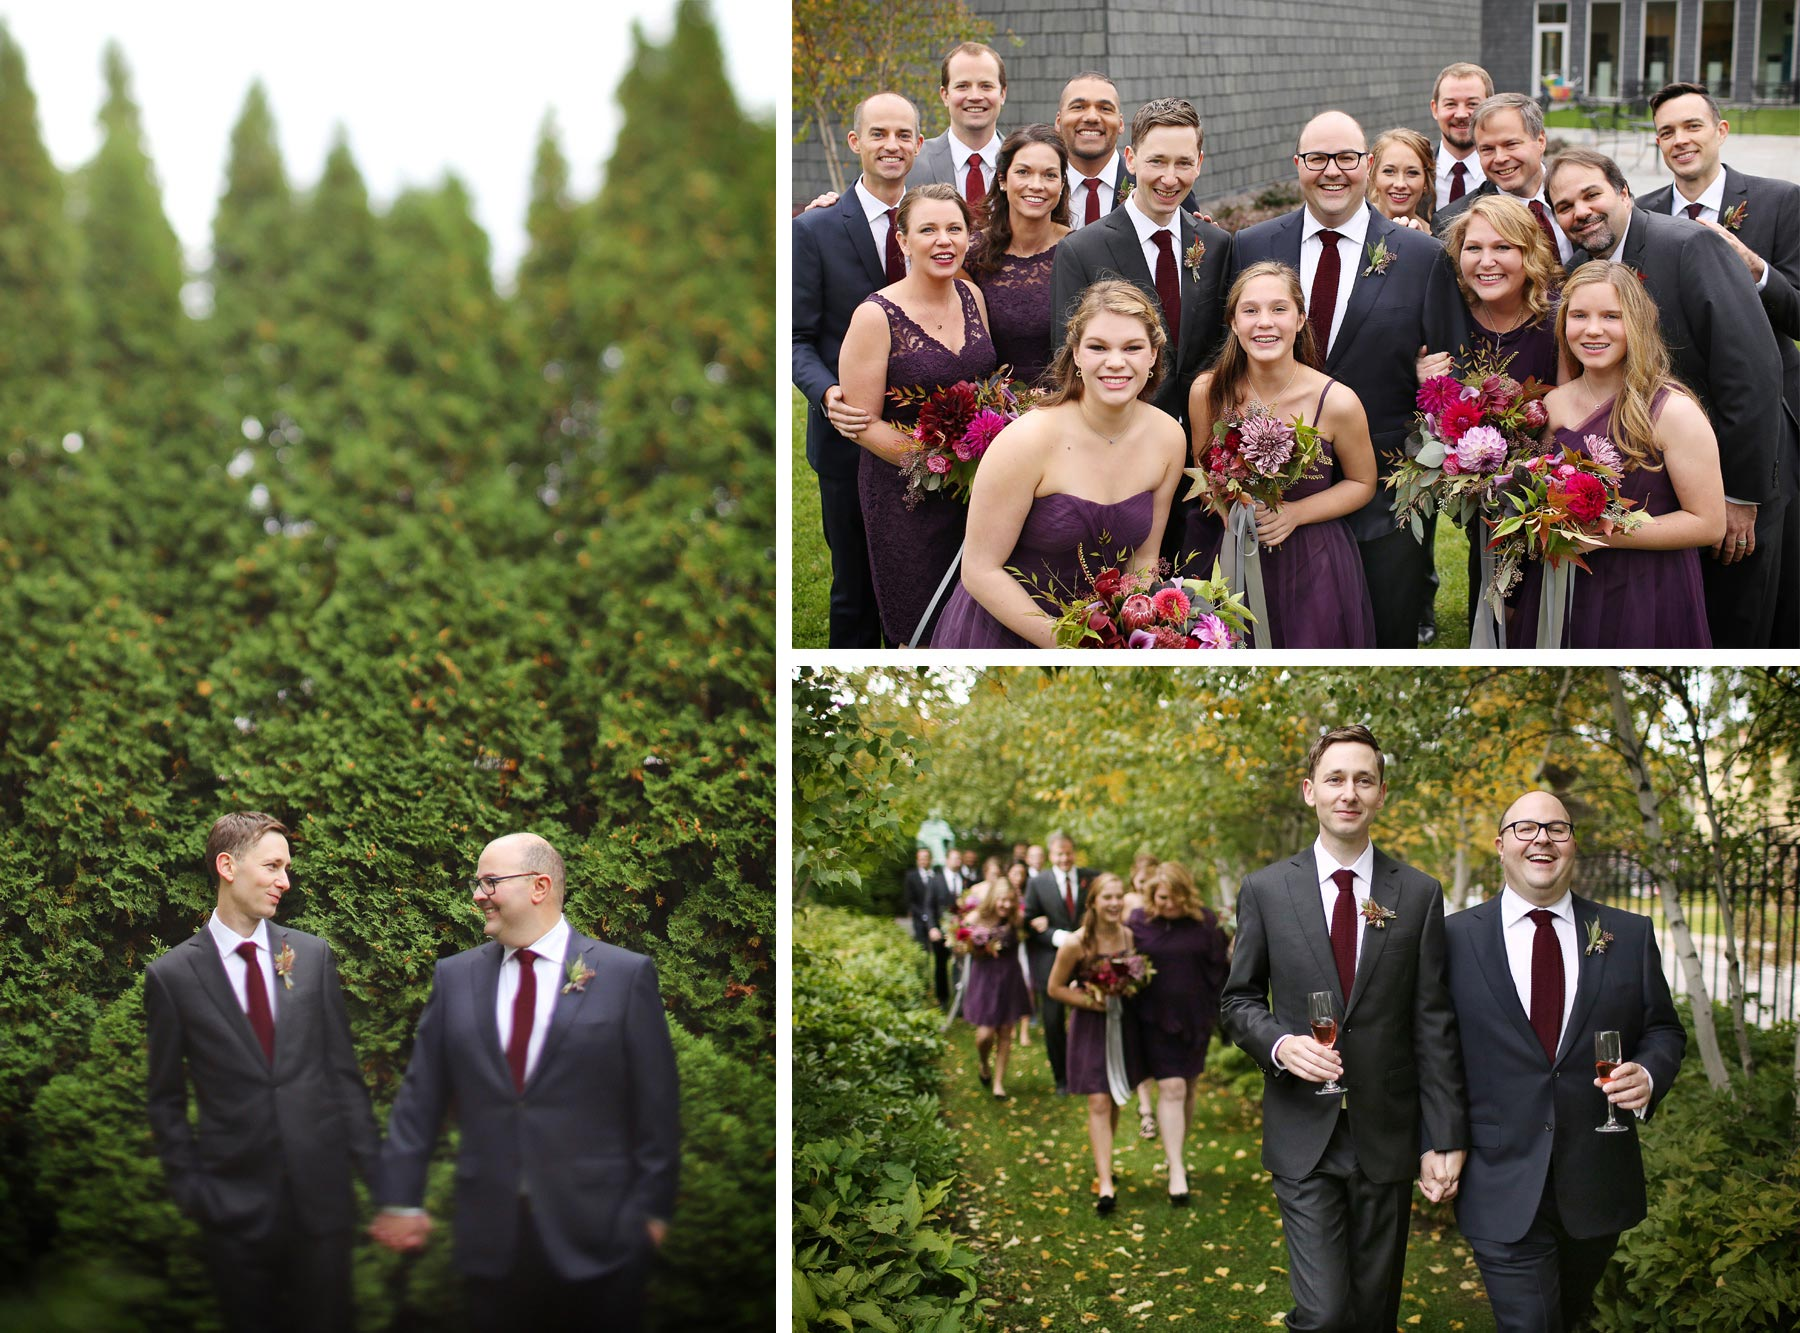 09-Minneapolis-Minnesota-Wedding-Photographer-by-Andrew-Vick-Photography-Fall-Autumn-American-Swedish-Institute-Groom-Bridesmaids-Groomsmen-Champagne-Holding-Hands-Tilt-Shift-Ben-and-Adam.jpg